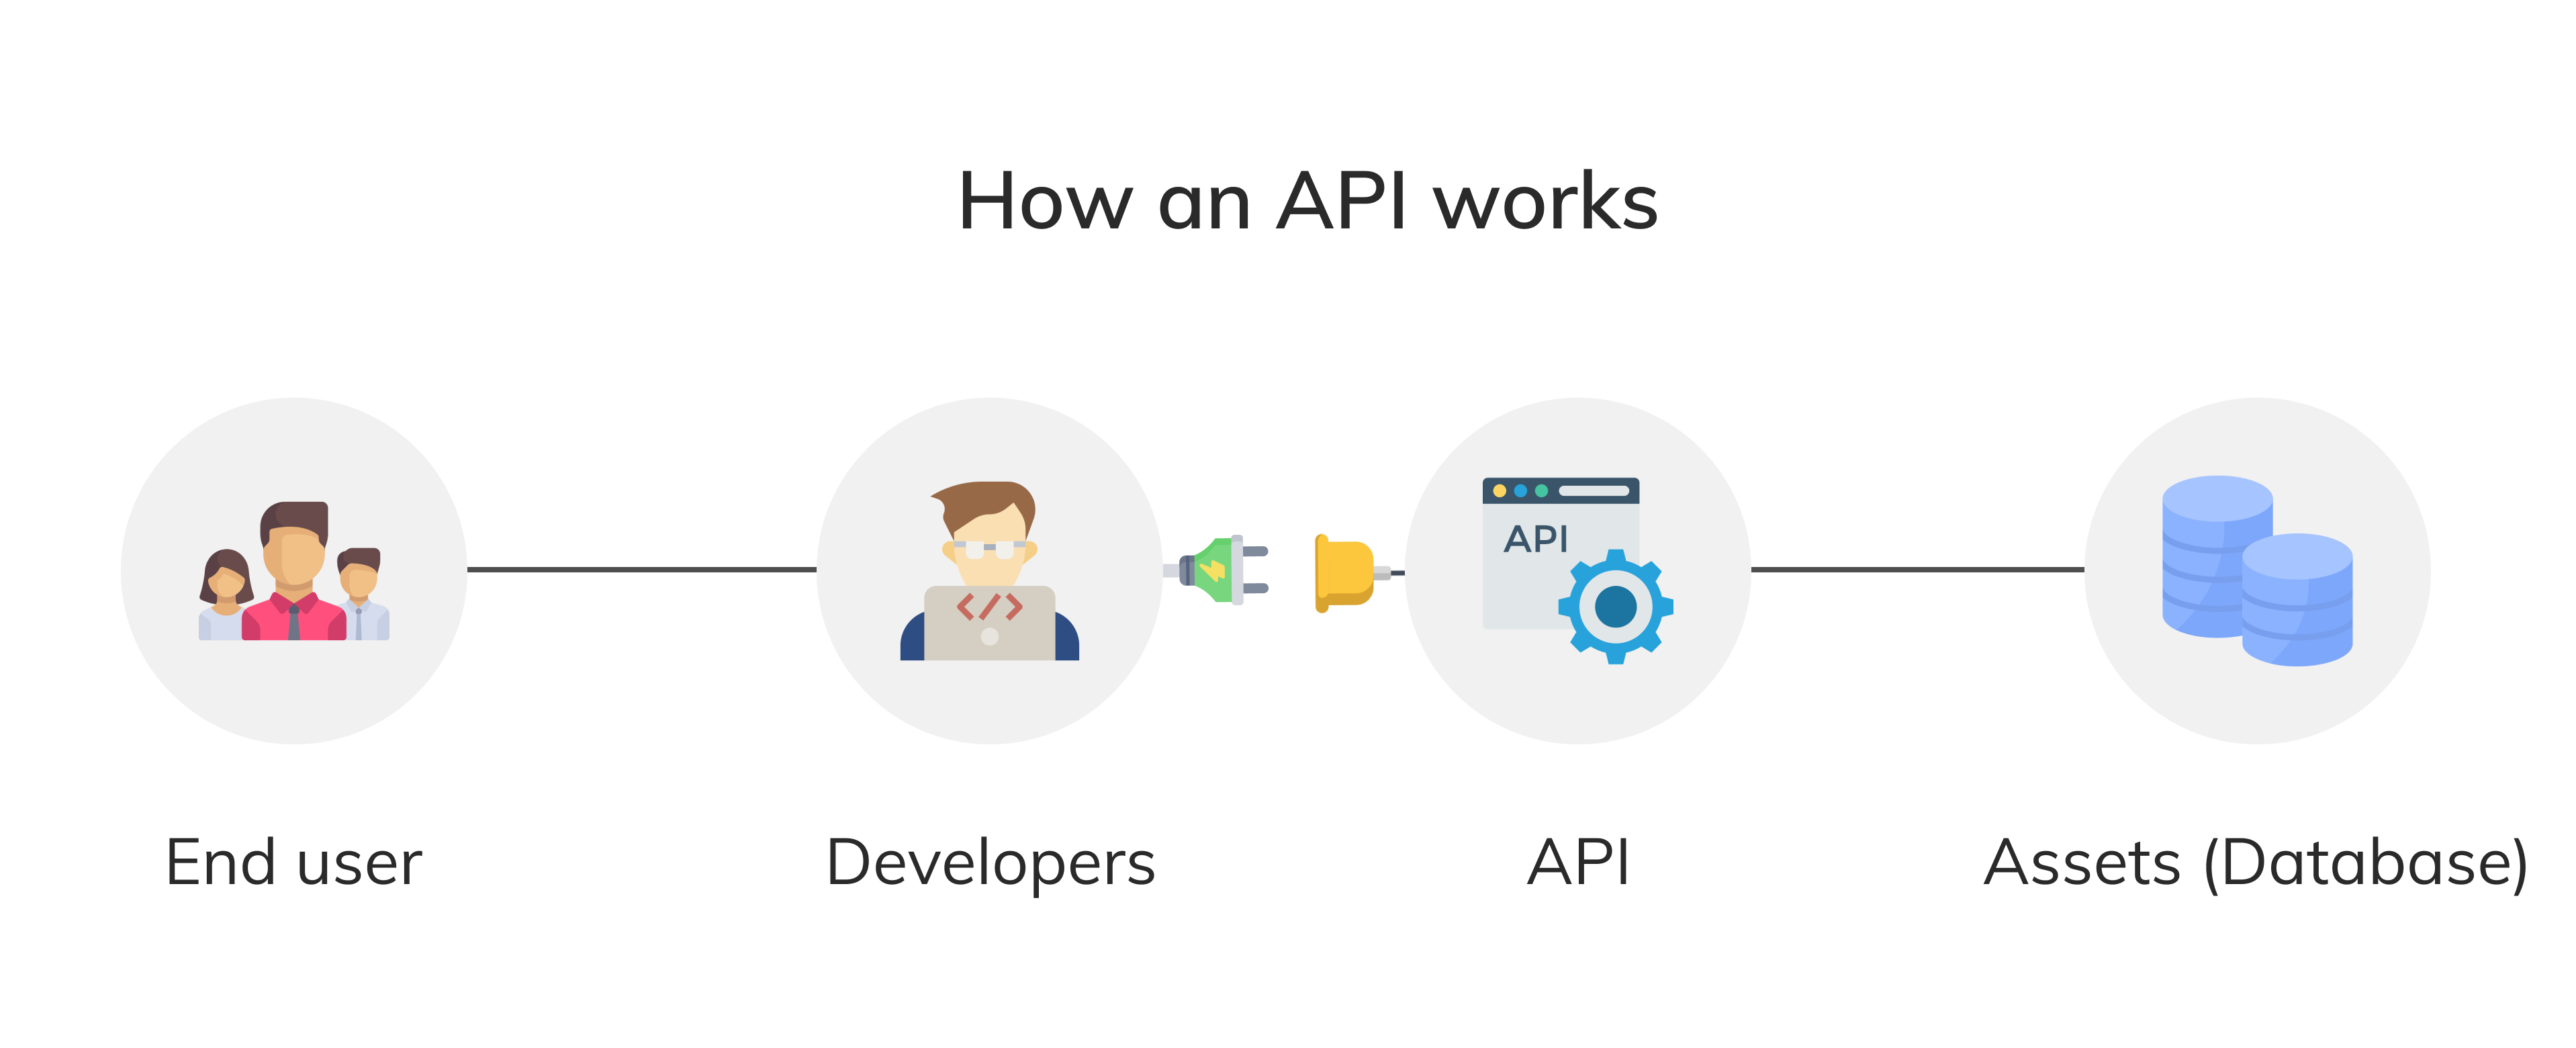 image which describes how an API works